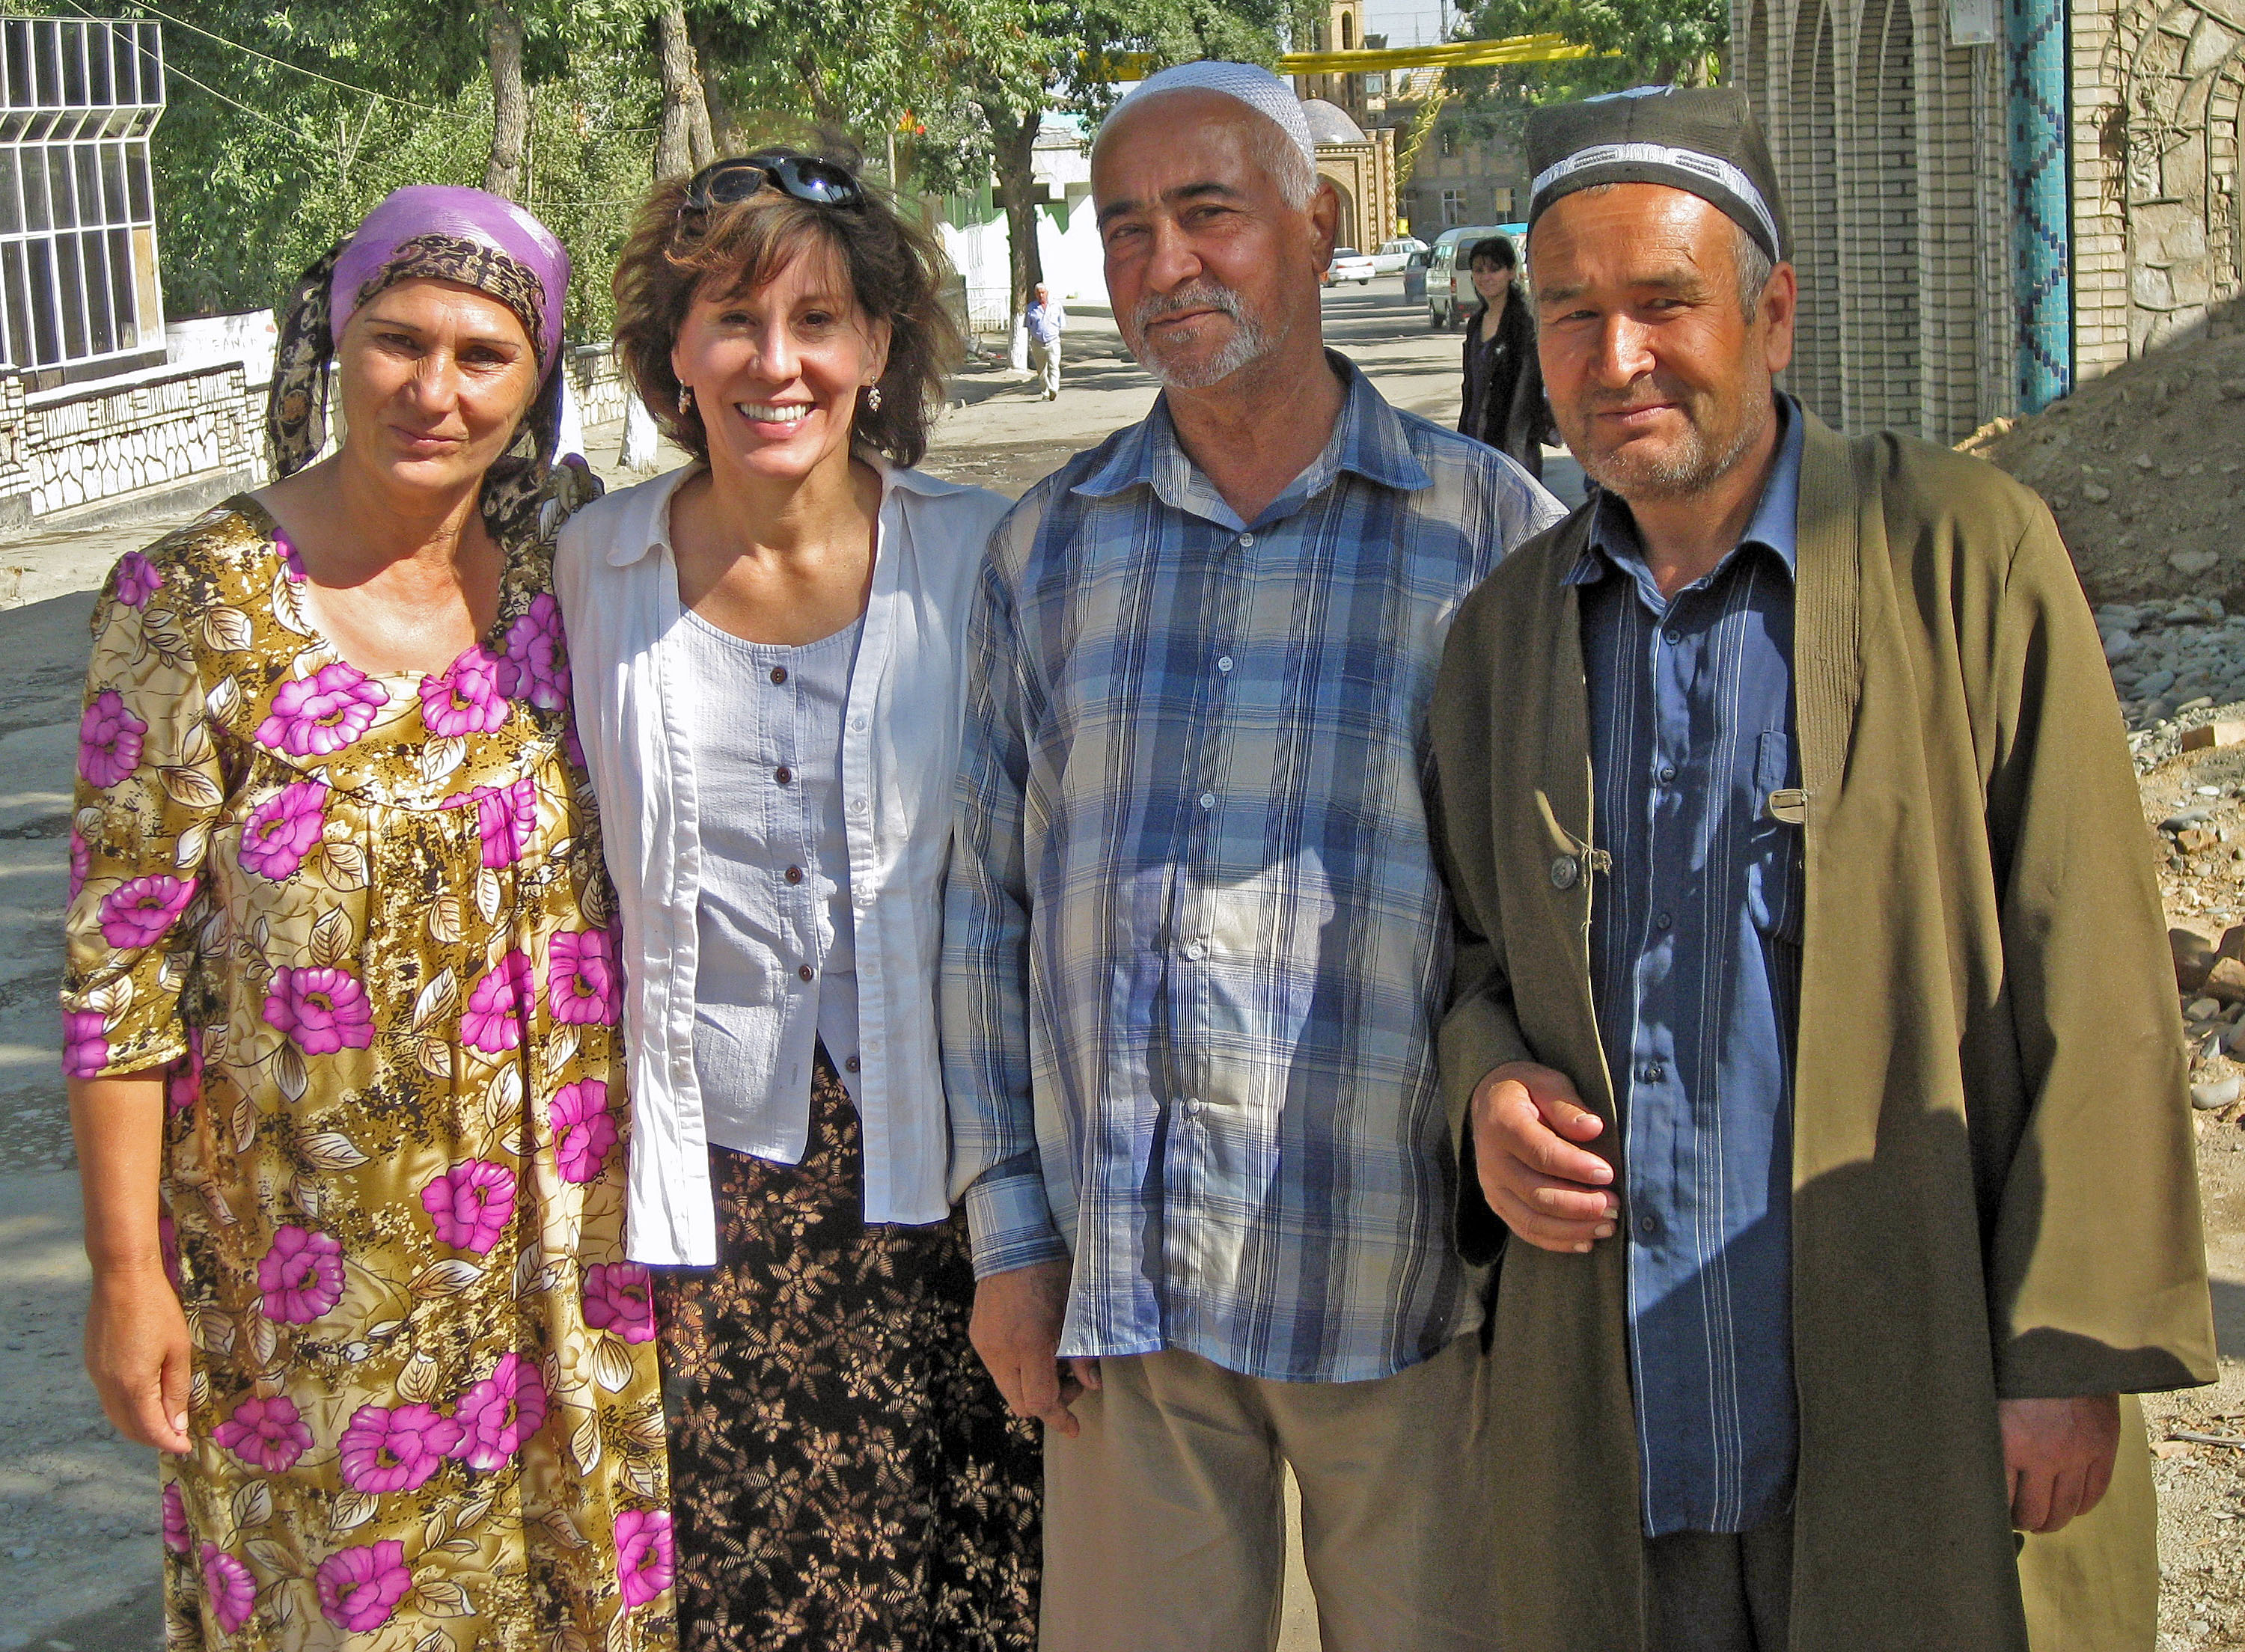 I'm surrounded by that warm and welcoming spirit of Uzbeks, and Uzbekistan. (2008)